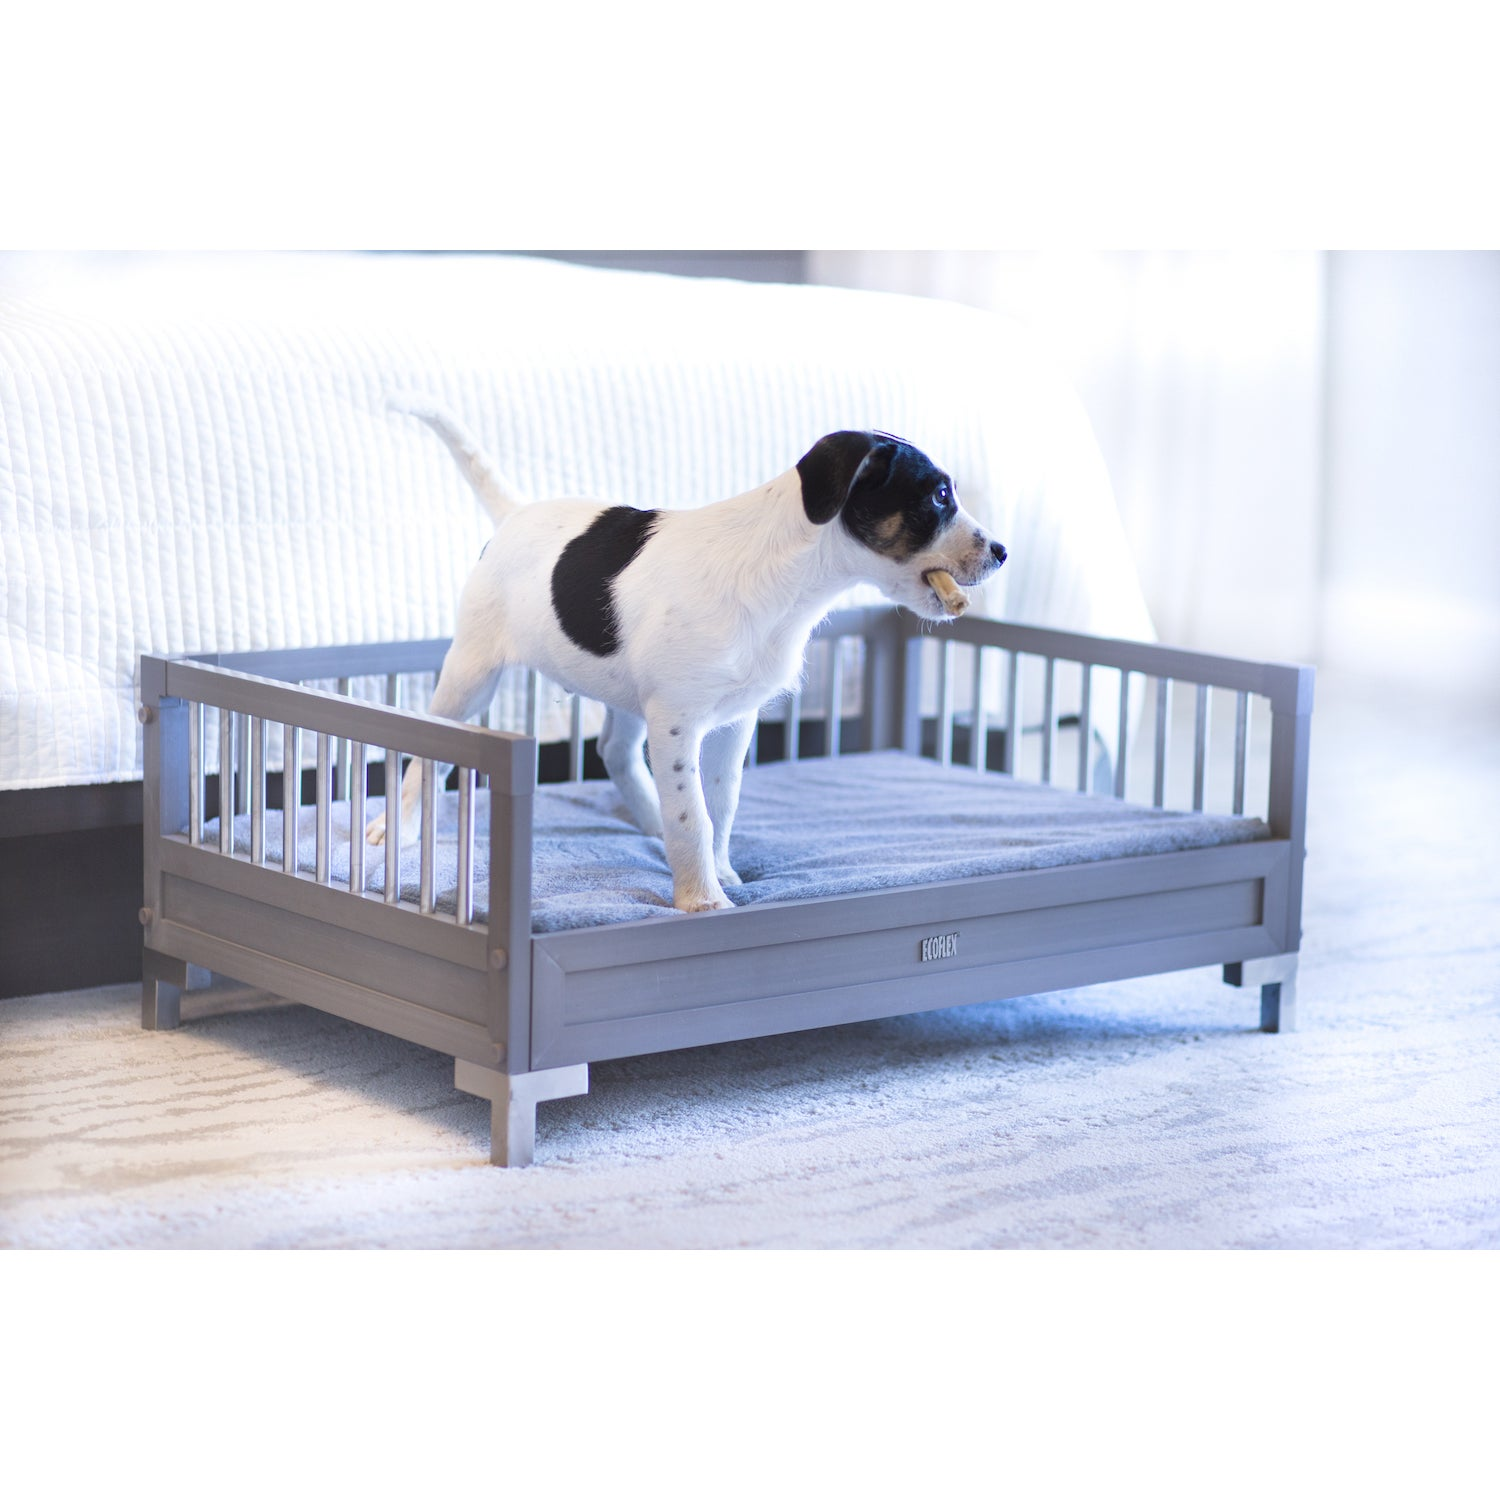 New Age Pet ecoFlex Manhattan Raised Dog Bed with Memory Foam Cushion -  Free Shipping Today - Overstock.com - 21131384